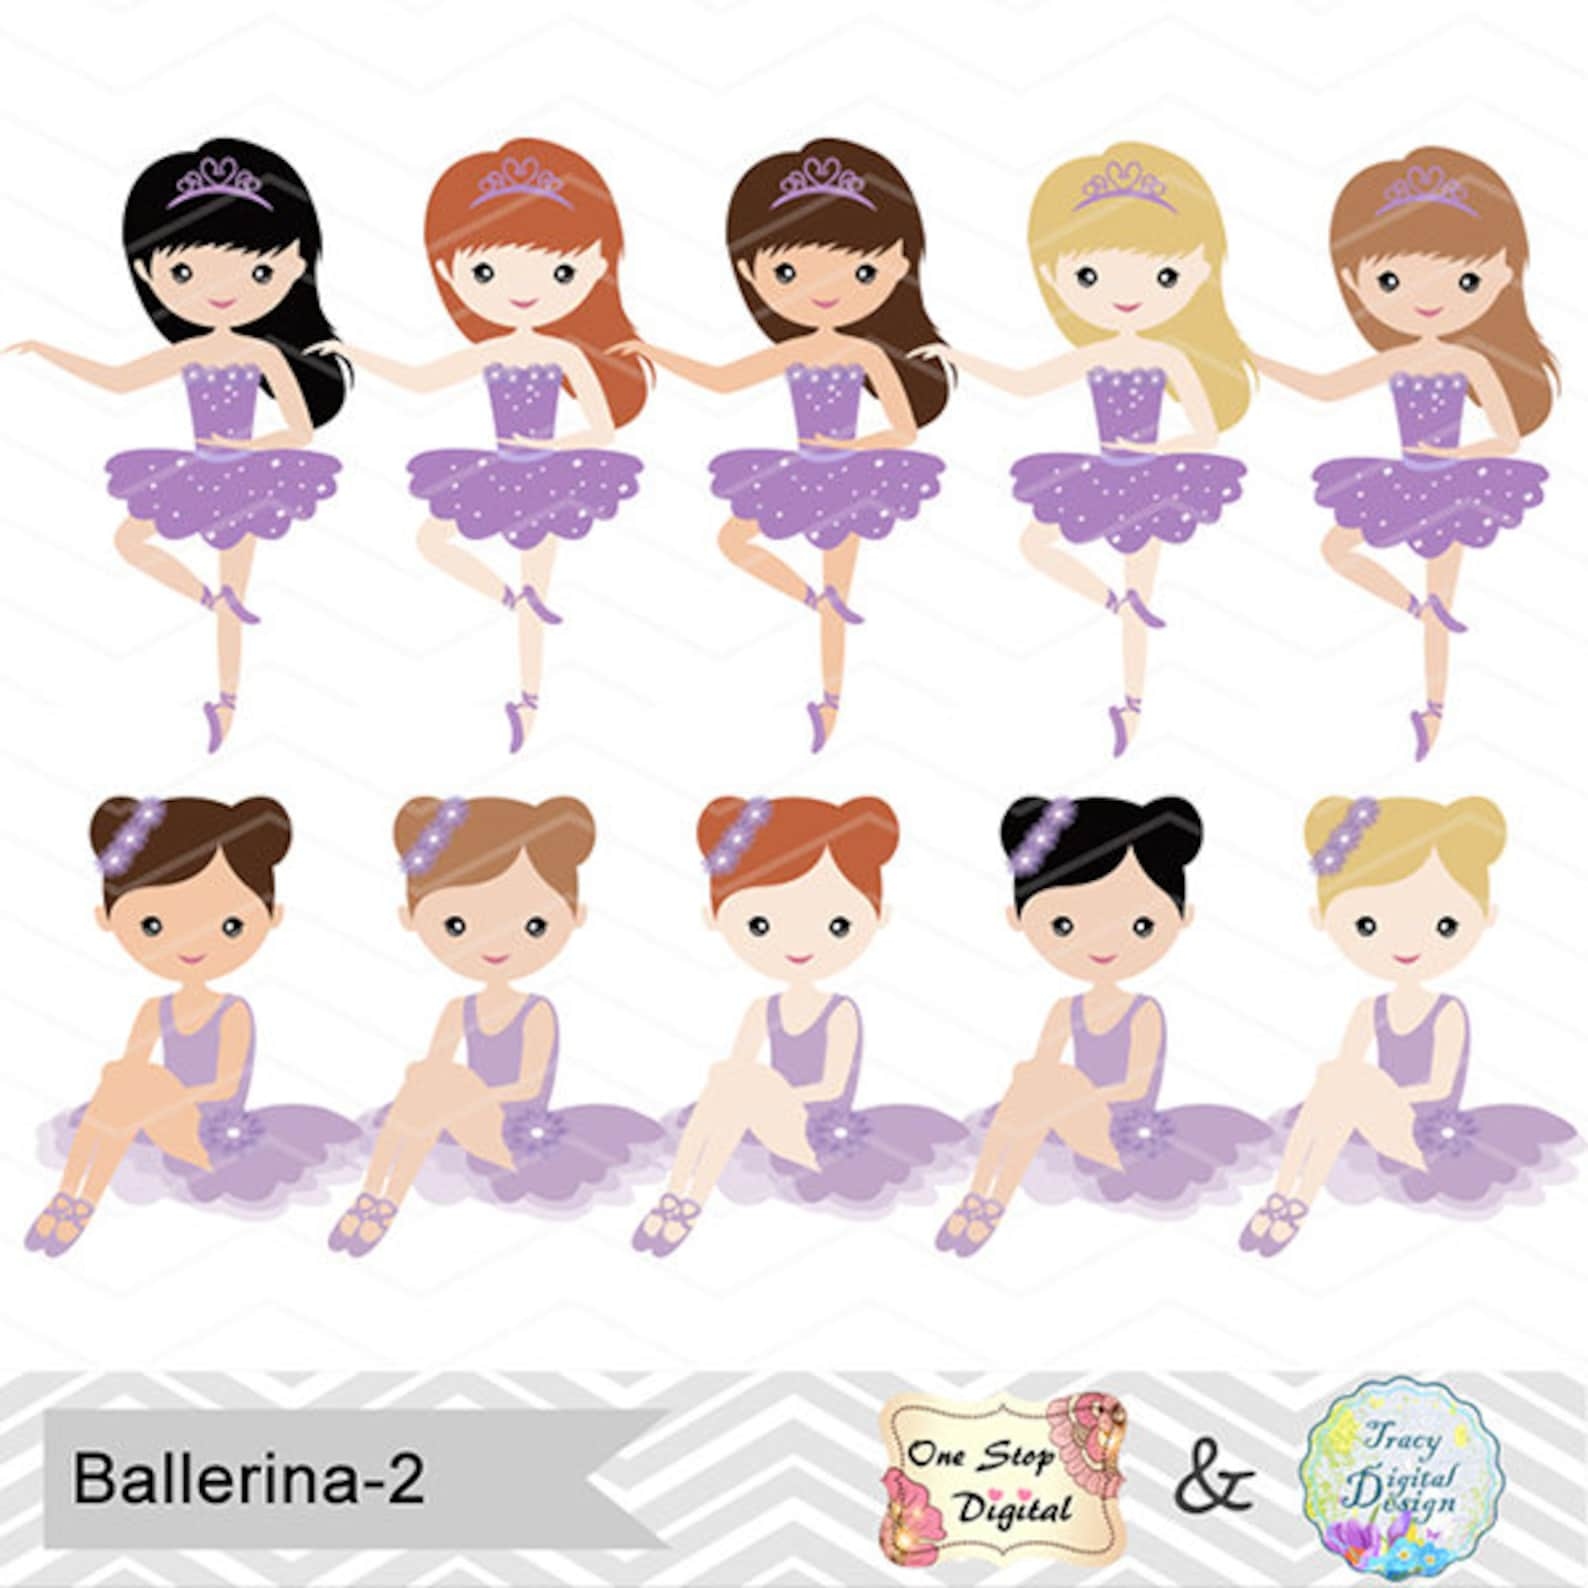 digital ballerina clip art, ballet clipart, purple ballet girls clip art, purple ballet shoes, purple ballet dress, ballet dance